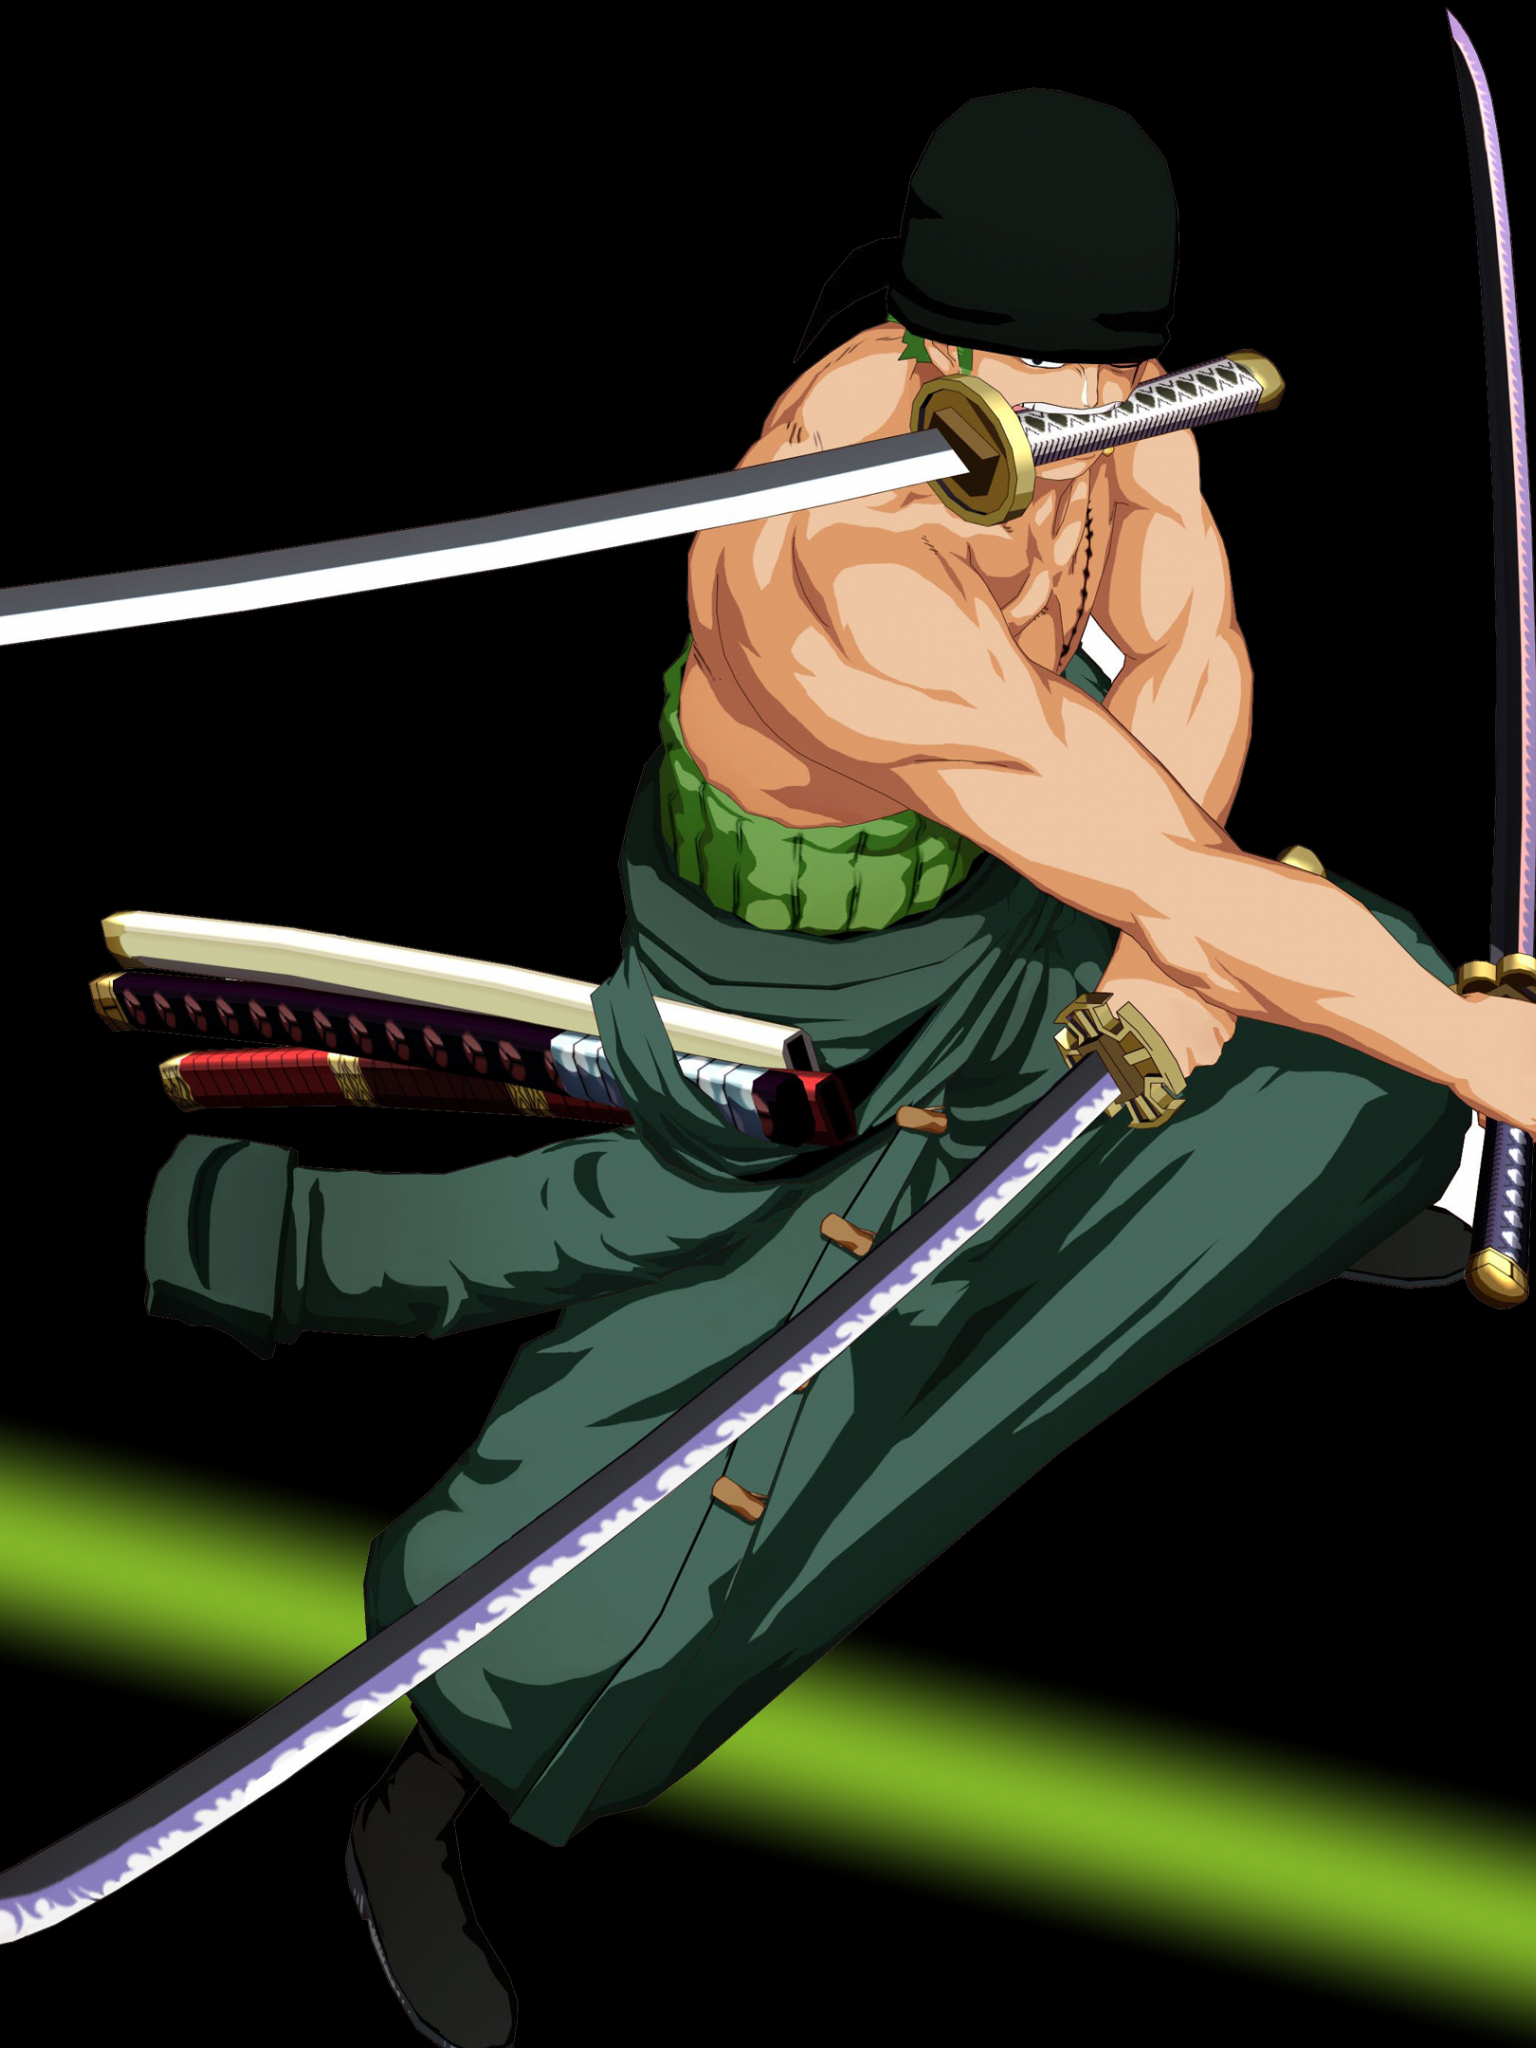 Free download Zoro One Piece 4k Ultra HD Wallpapers ...